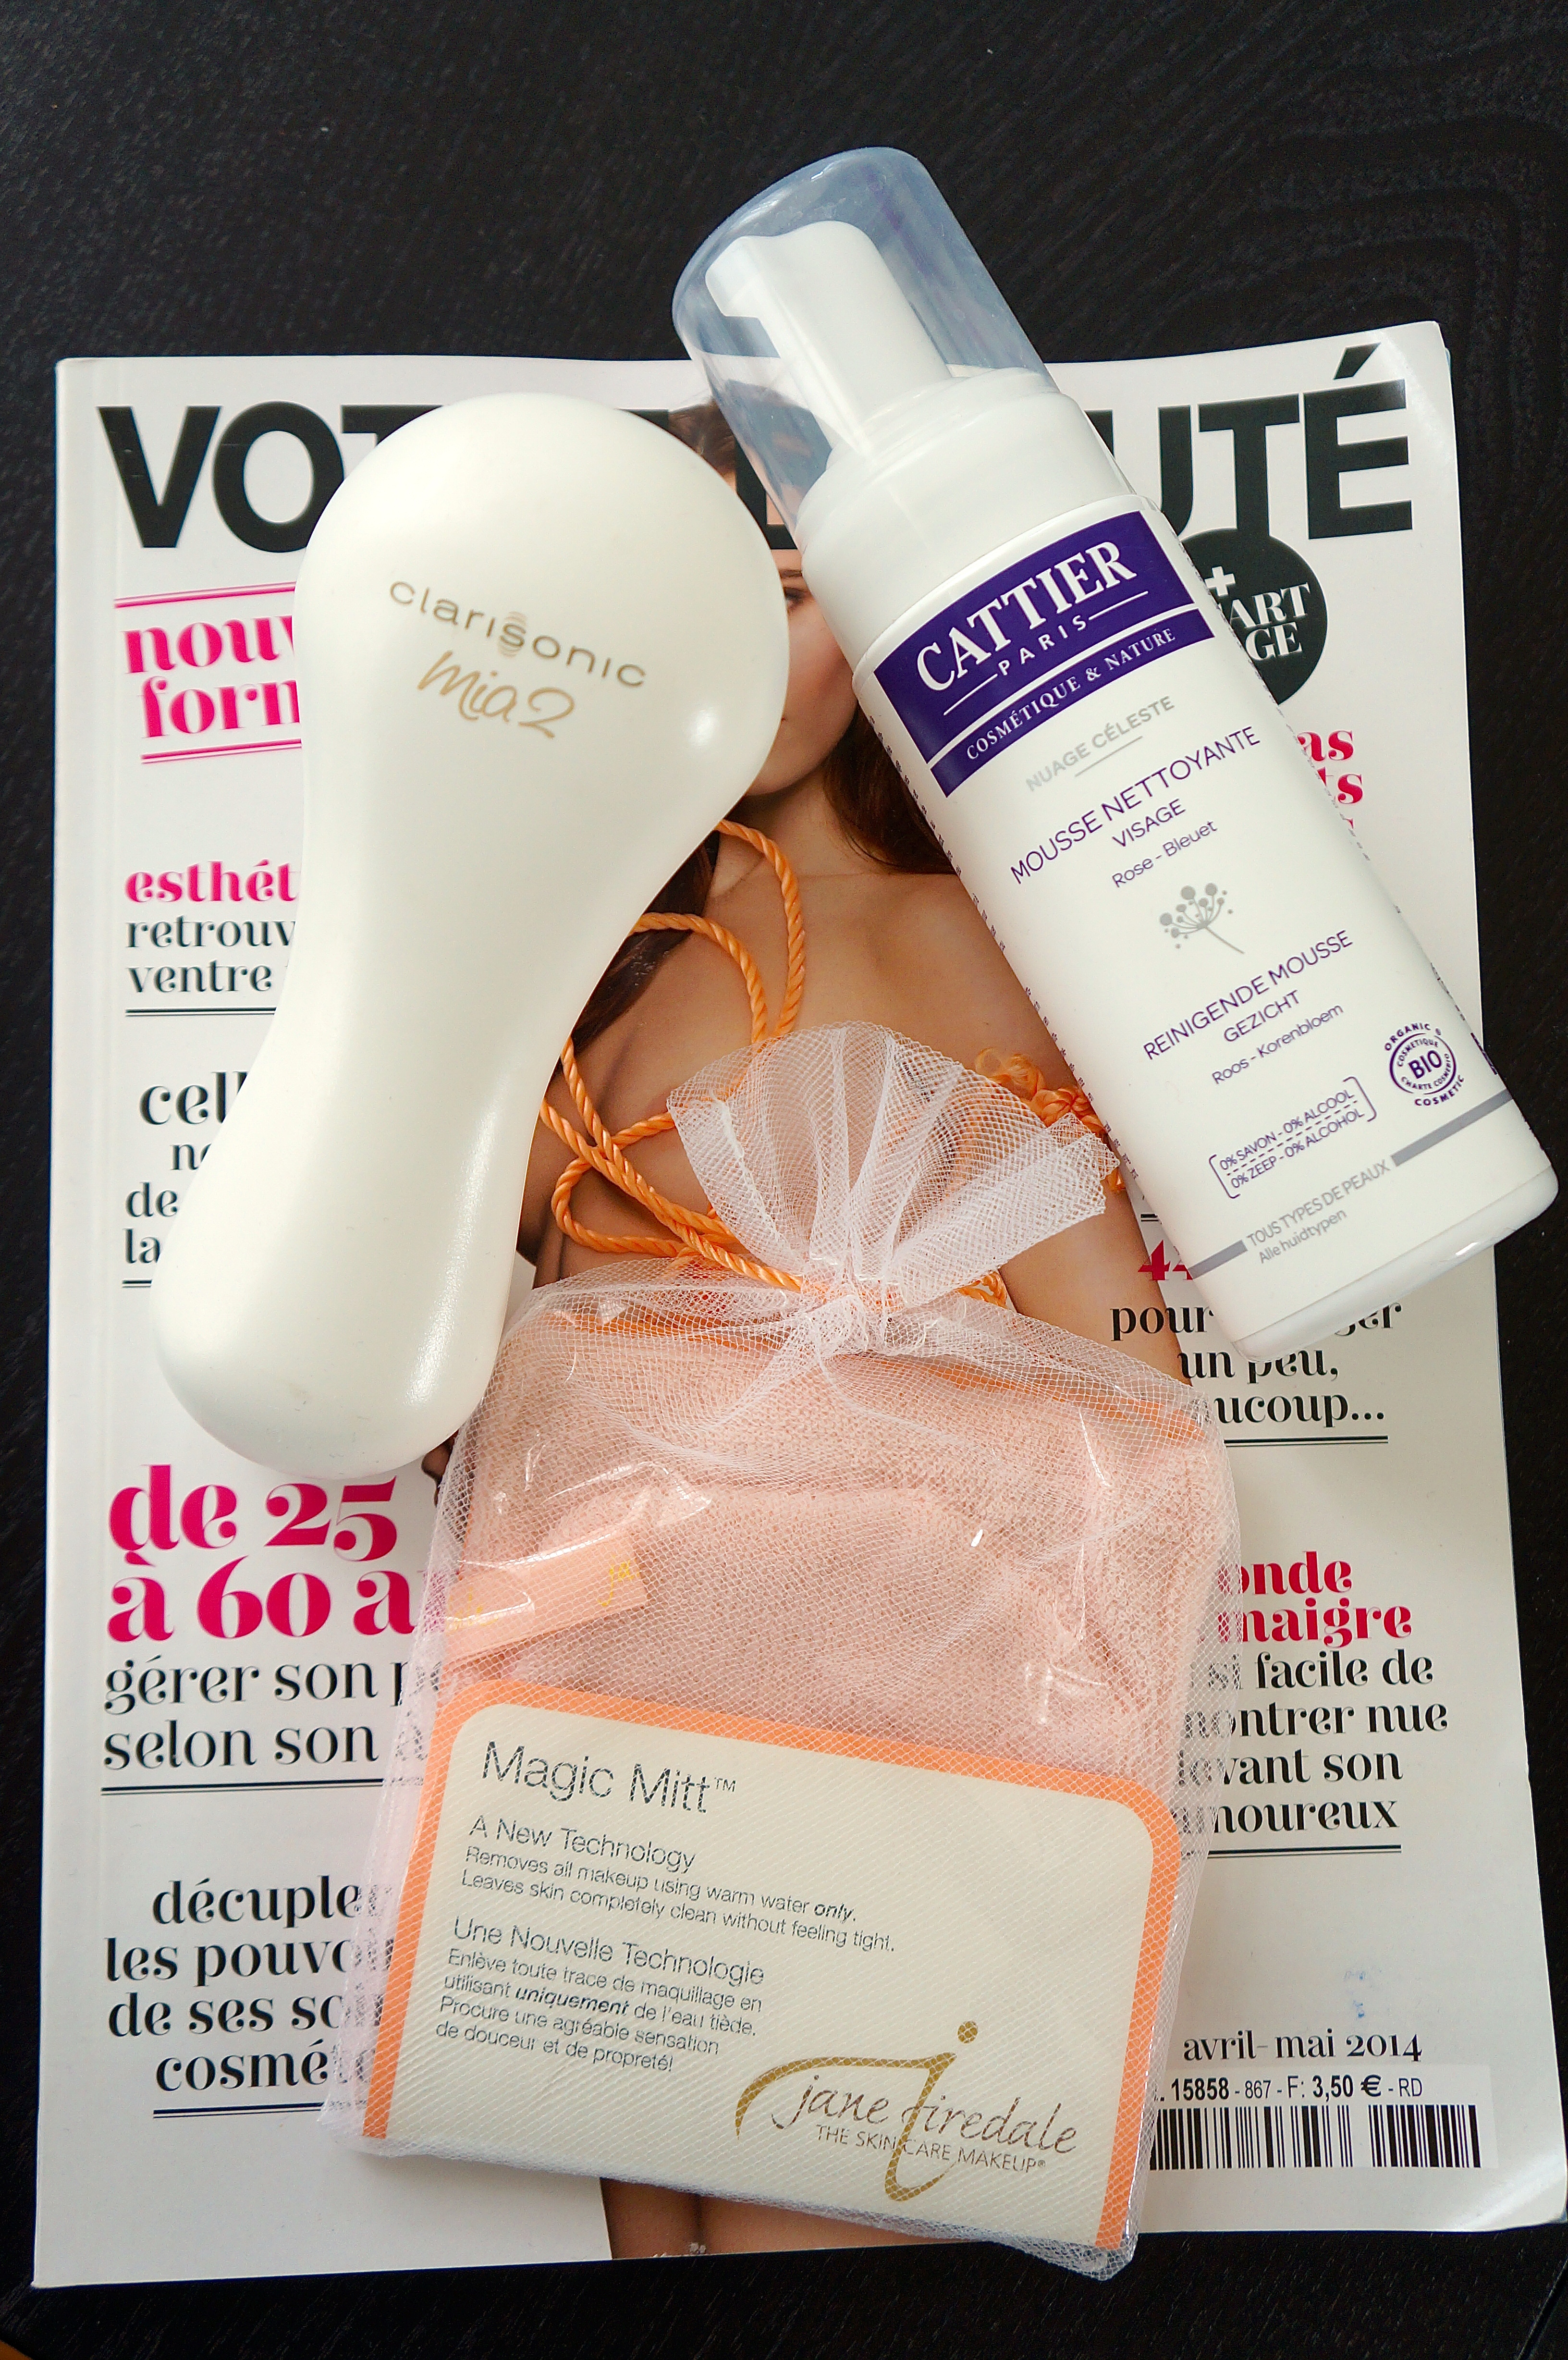 Jane Iredale Magic Mitt + Clarisonic Mia 2 c/o Clarisonic + Mousse Nettoyante Cattier/ Pic by kiwikoo.